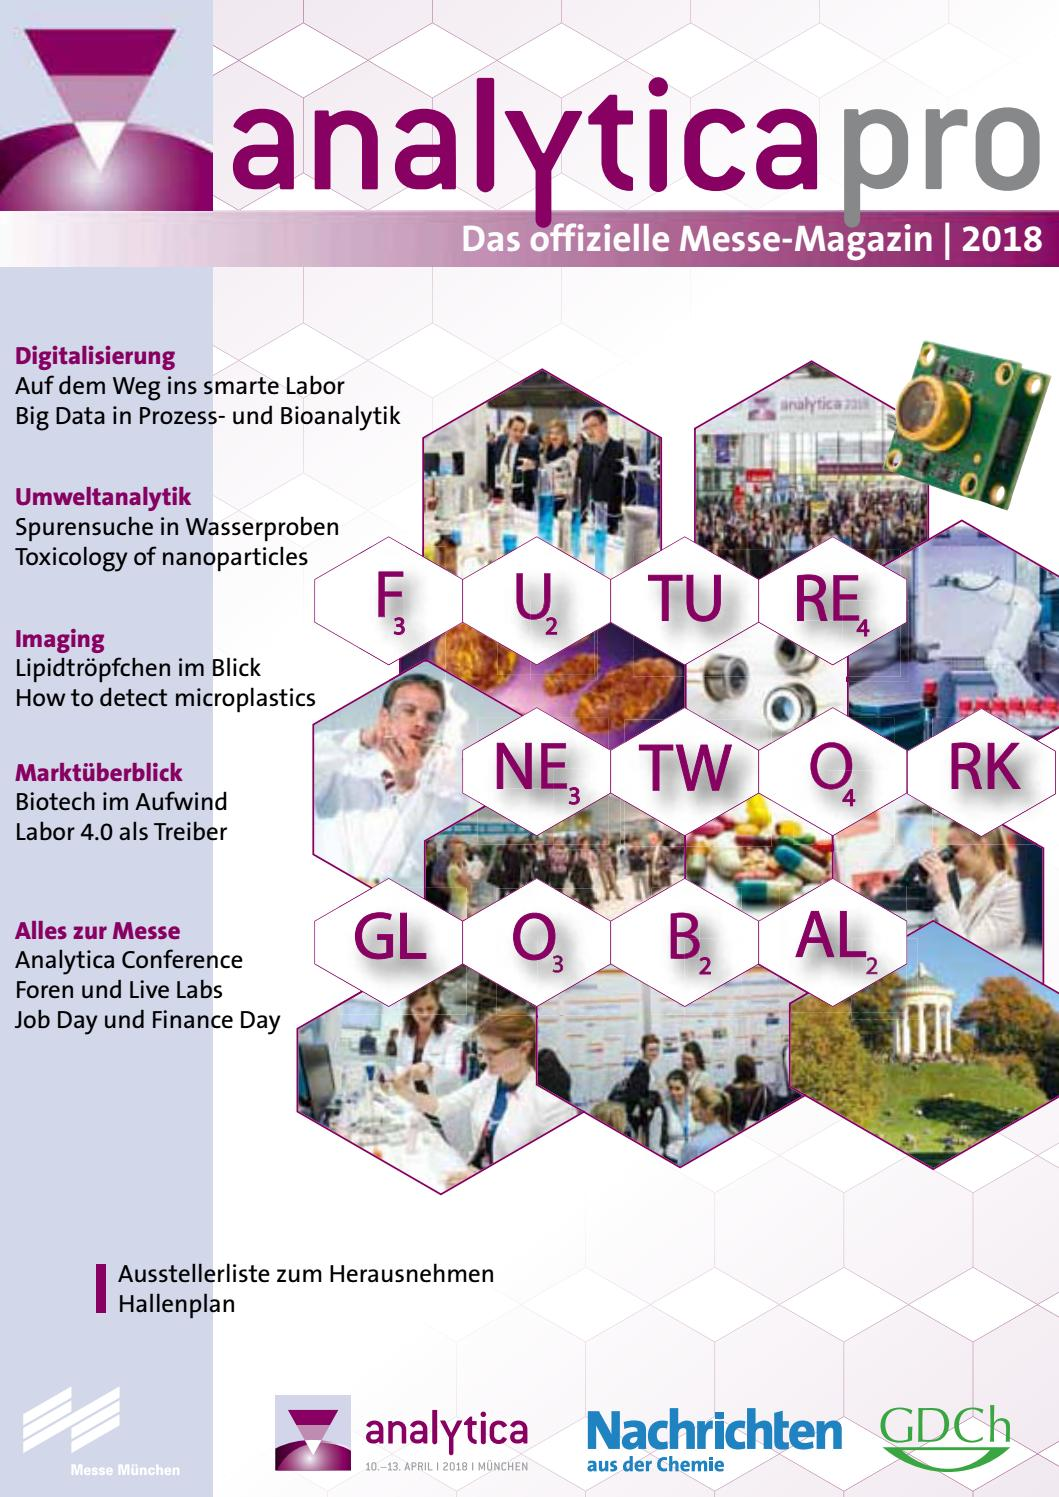 analytica_18_Messe_Magazin_pro_D by Messe Muenchen - issuu